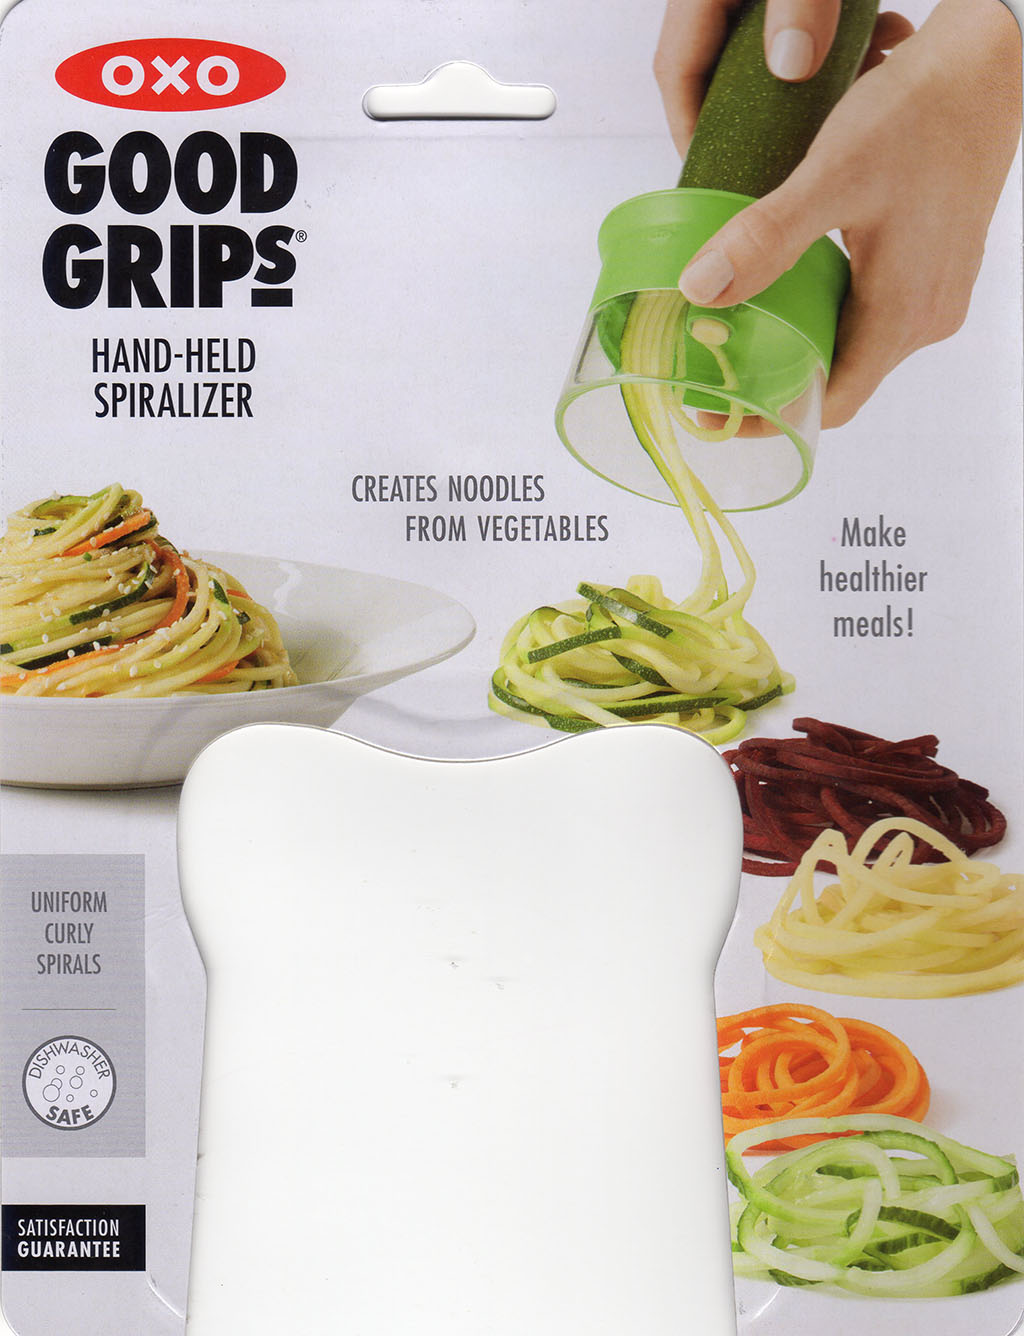 OXO Good Grips Hand Spiralizer package front